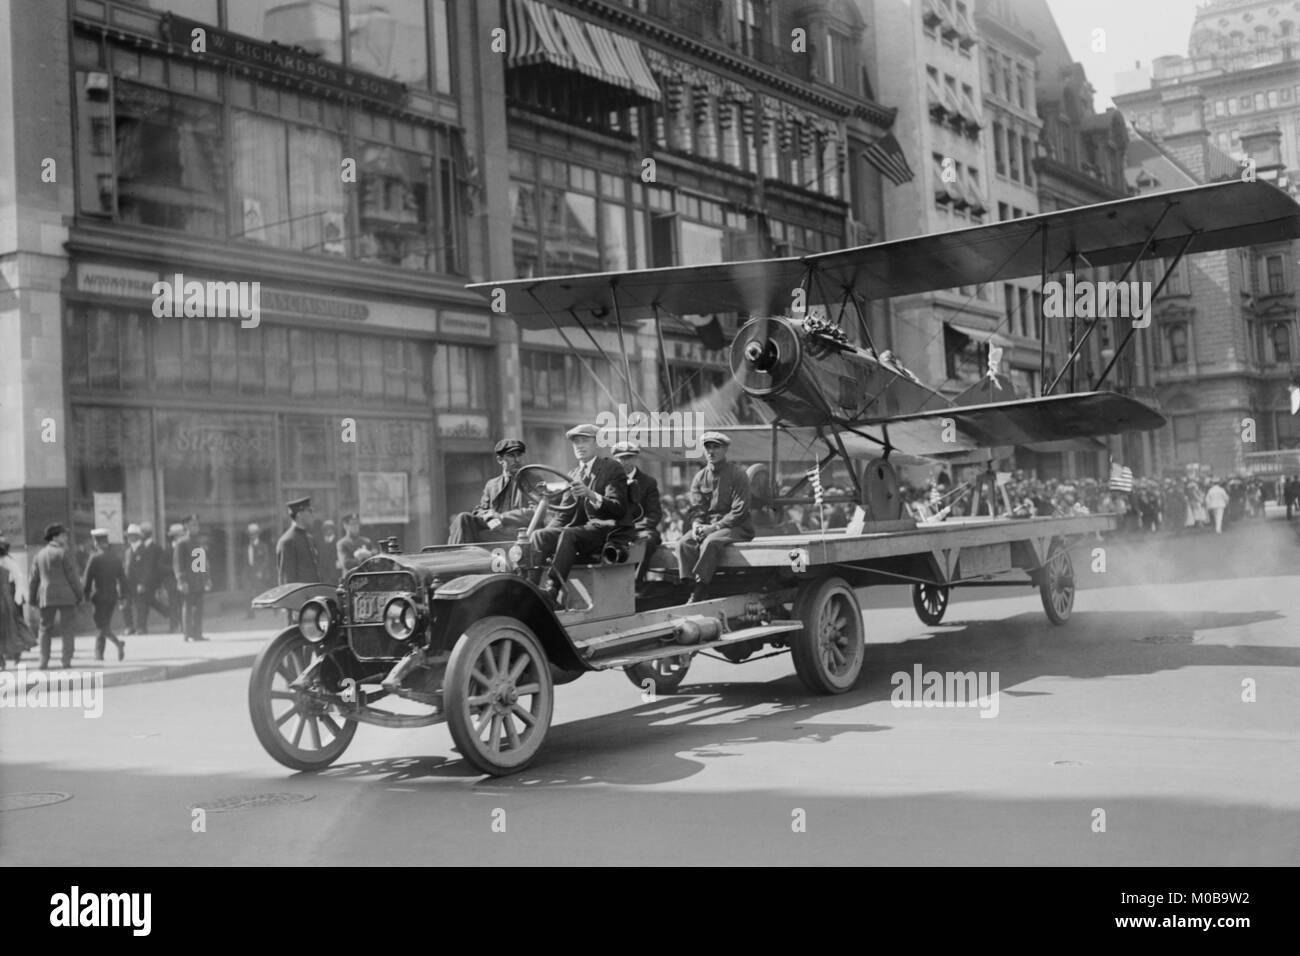 Biplane with spinning propeller is towed down Fifth Avenue New York for July 4th Parade - Stock Image